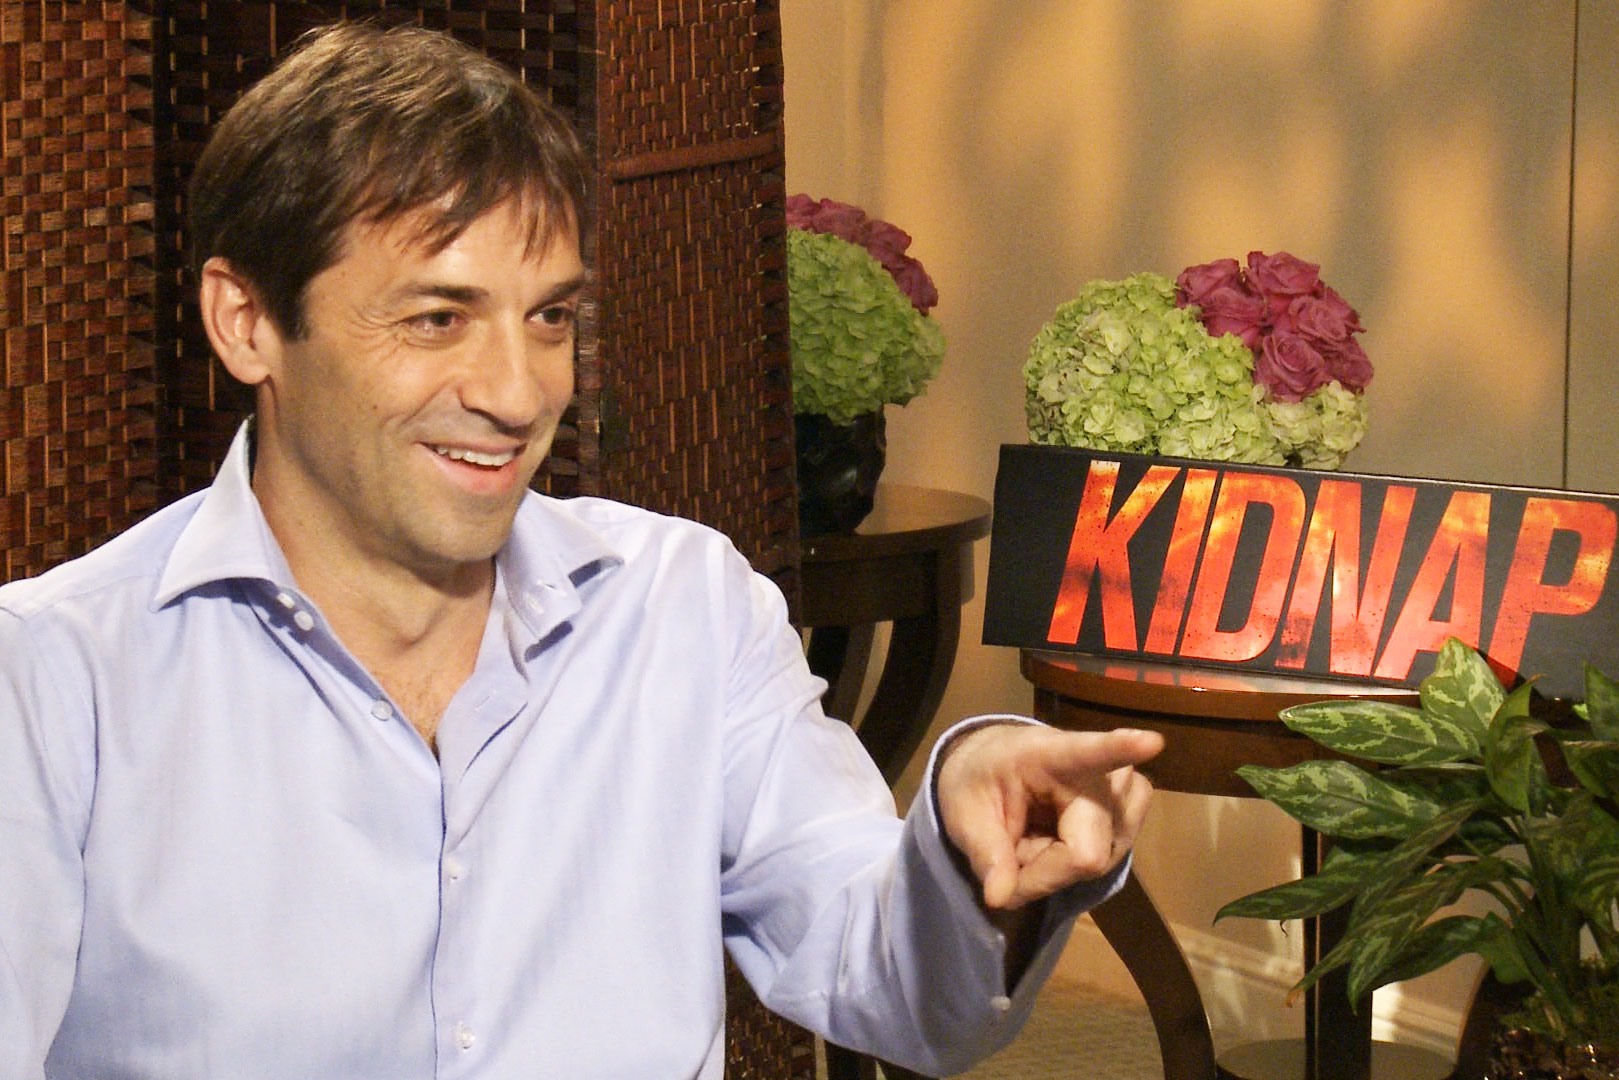 Kidnap Luis Prieto interview